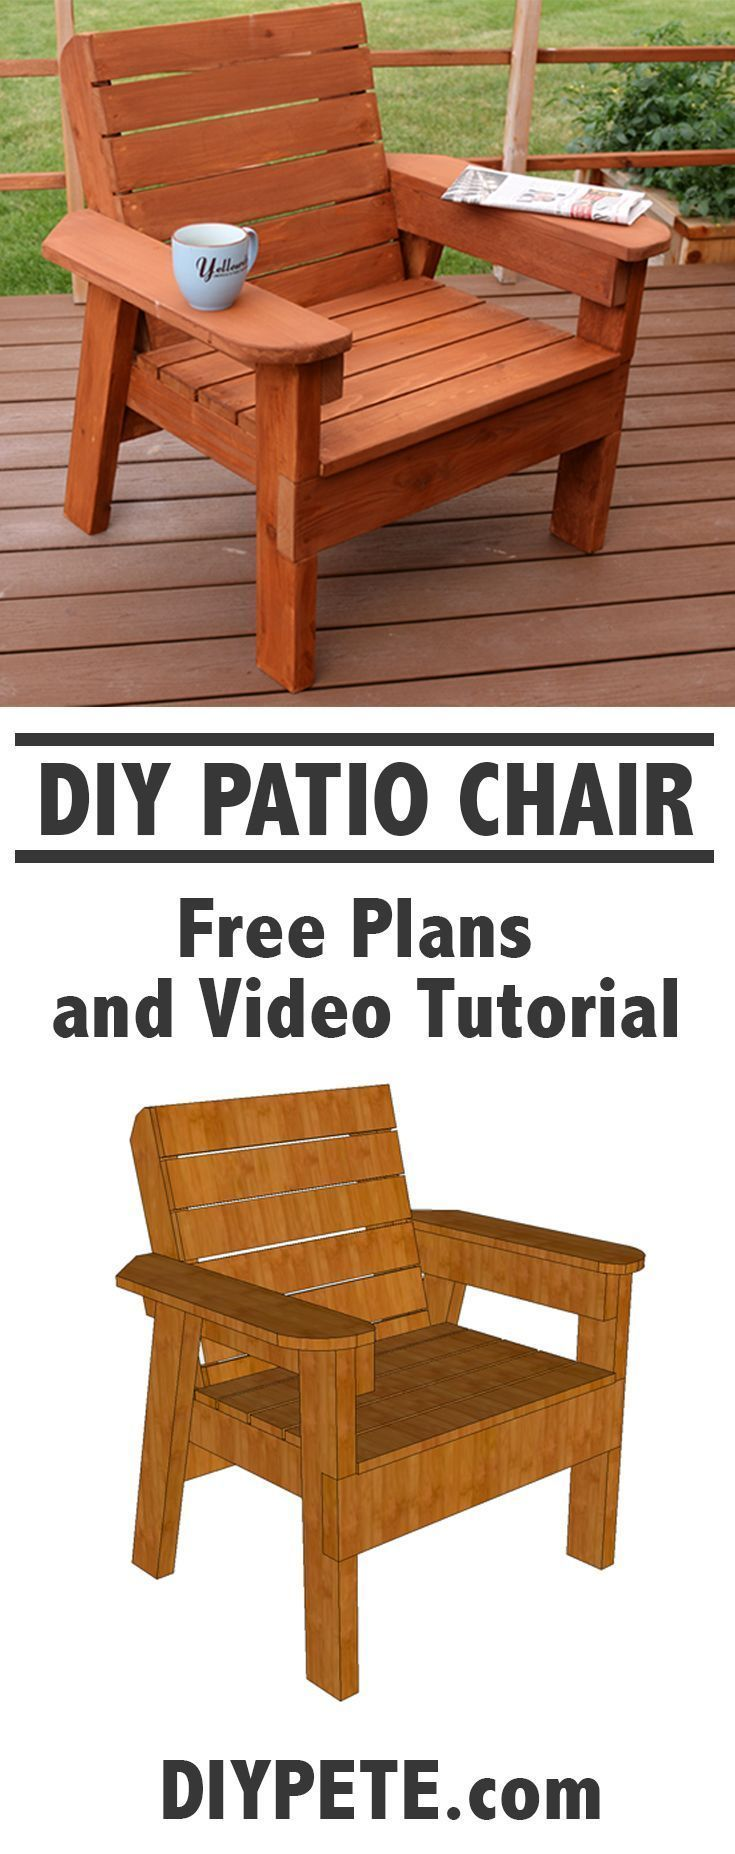 Free Woodworking Plans for Outdoor Chairs Patio chairs